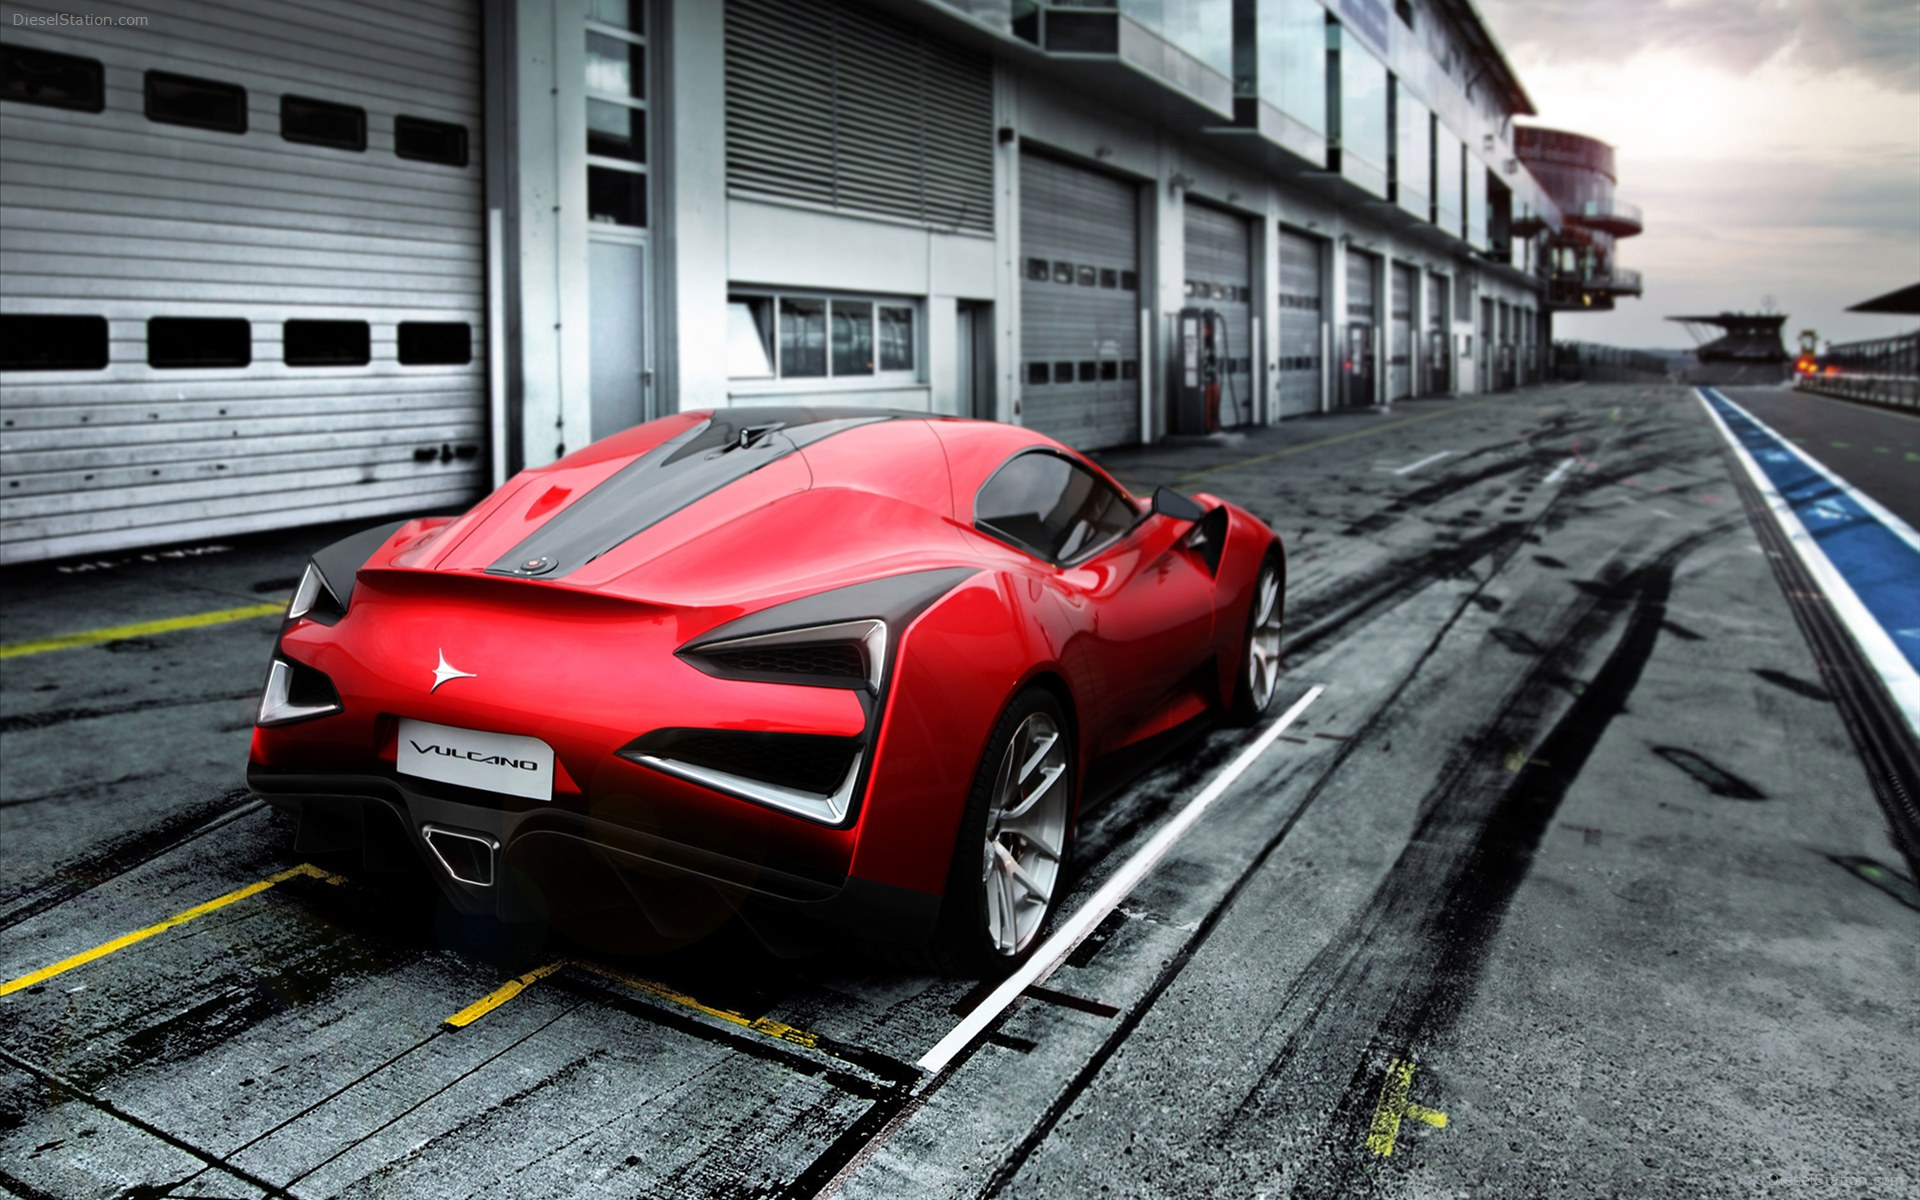 icona-vulcano-2013-exotic-car-21-52-diesel